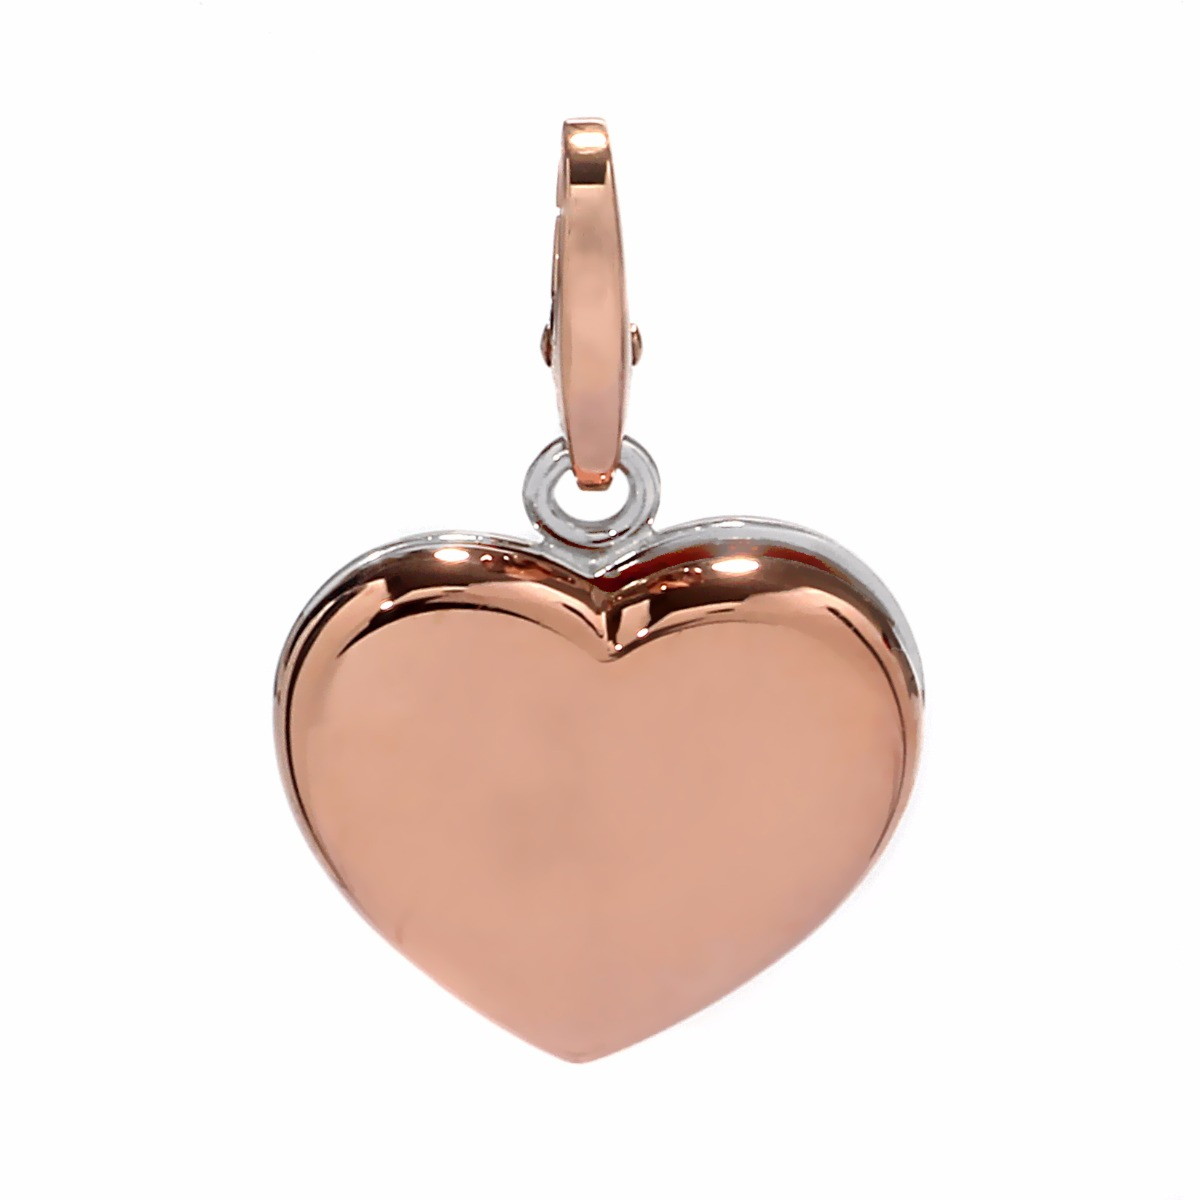 Cartier Heart Two Tone Gold Charm Pendant